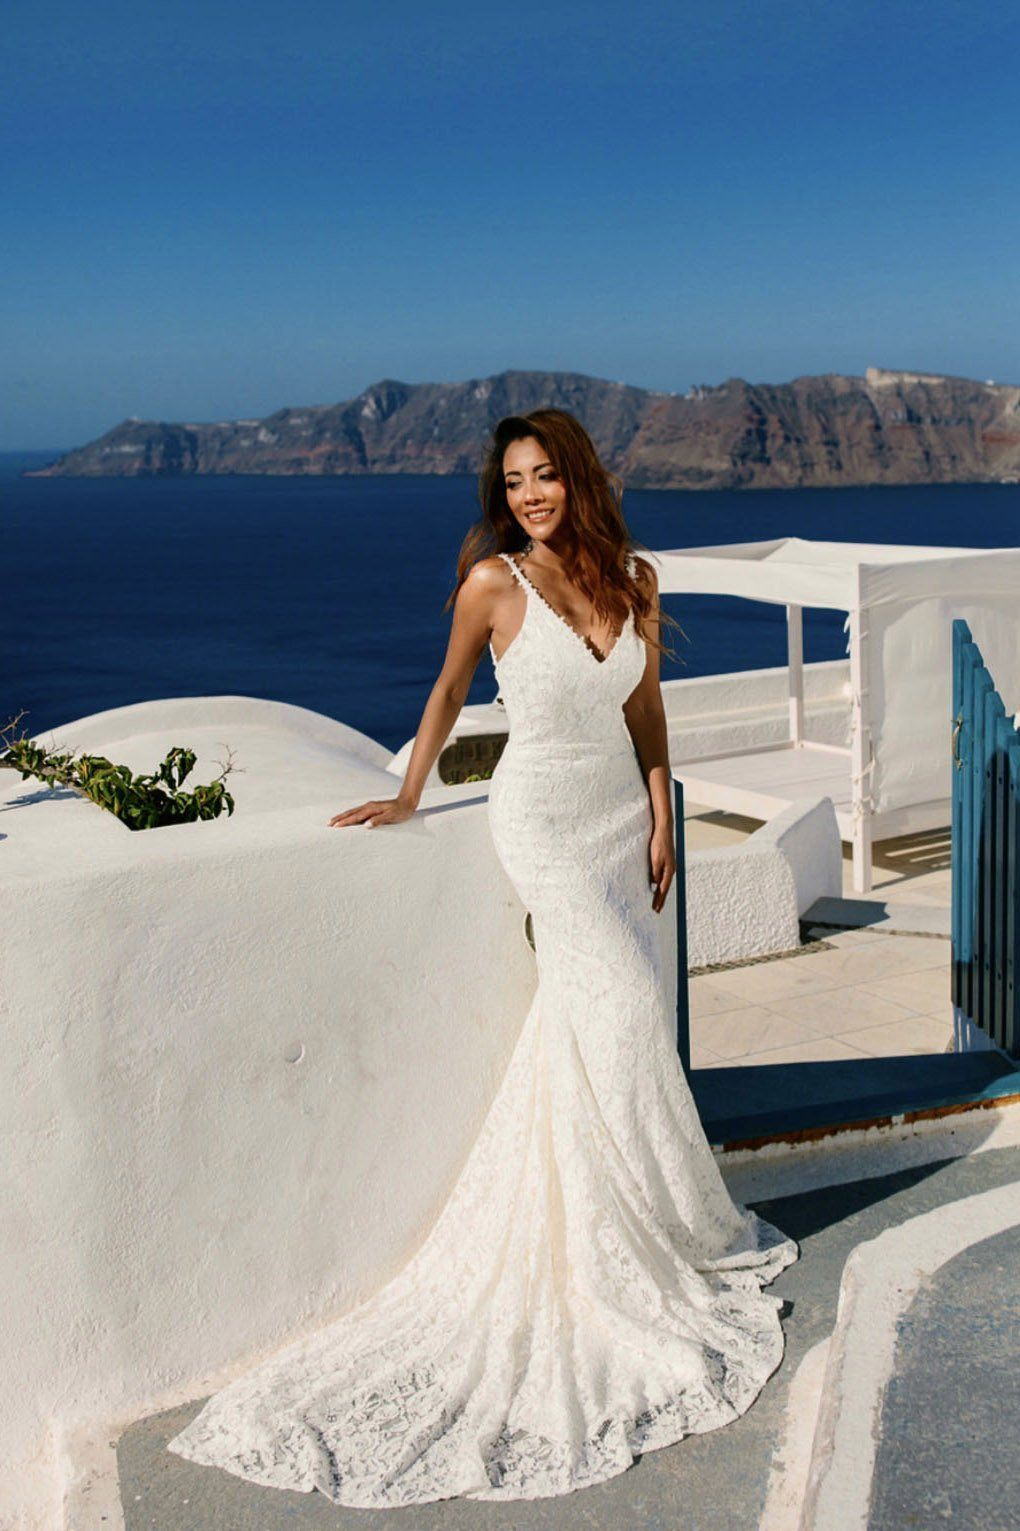 White Sleeveless Lace Fitted Floor Length Wedding Dress with V Neckline, Lace Trims on Thin Shoulder Straps, V Backless, Long train